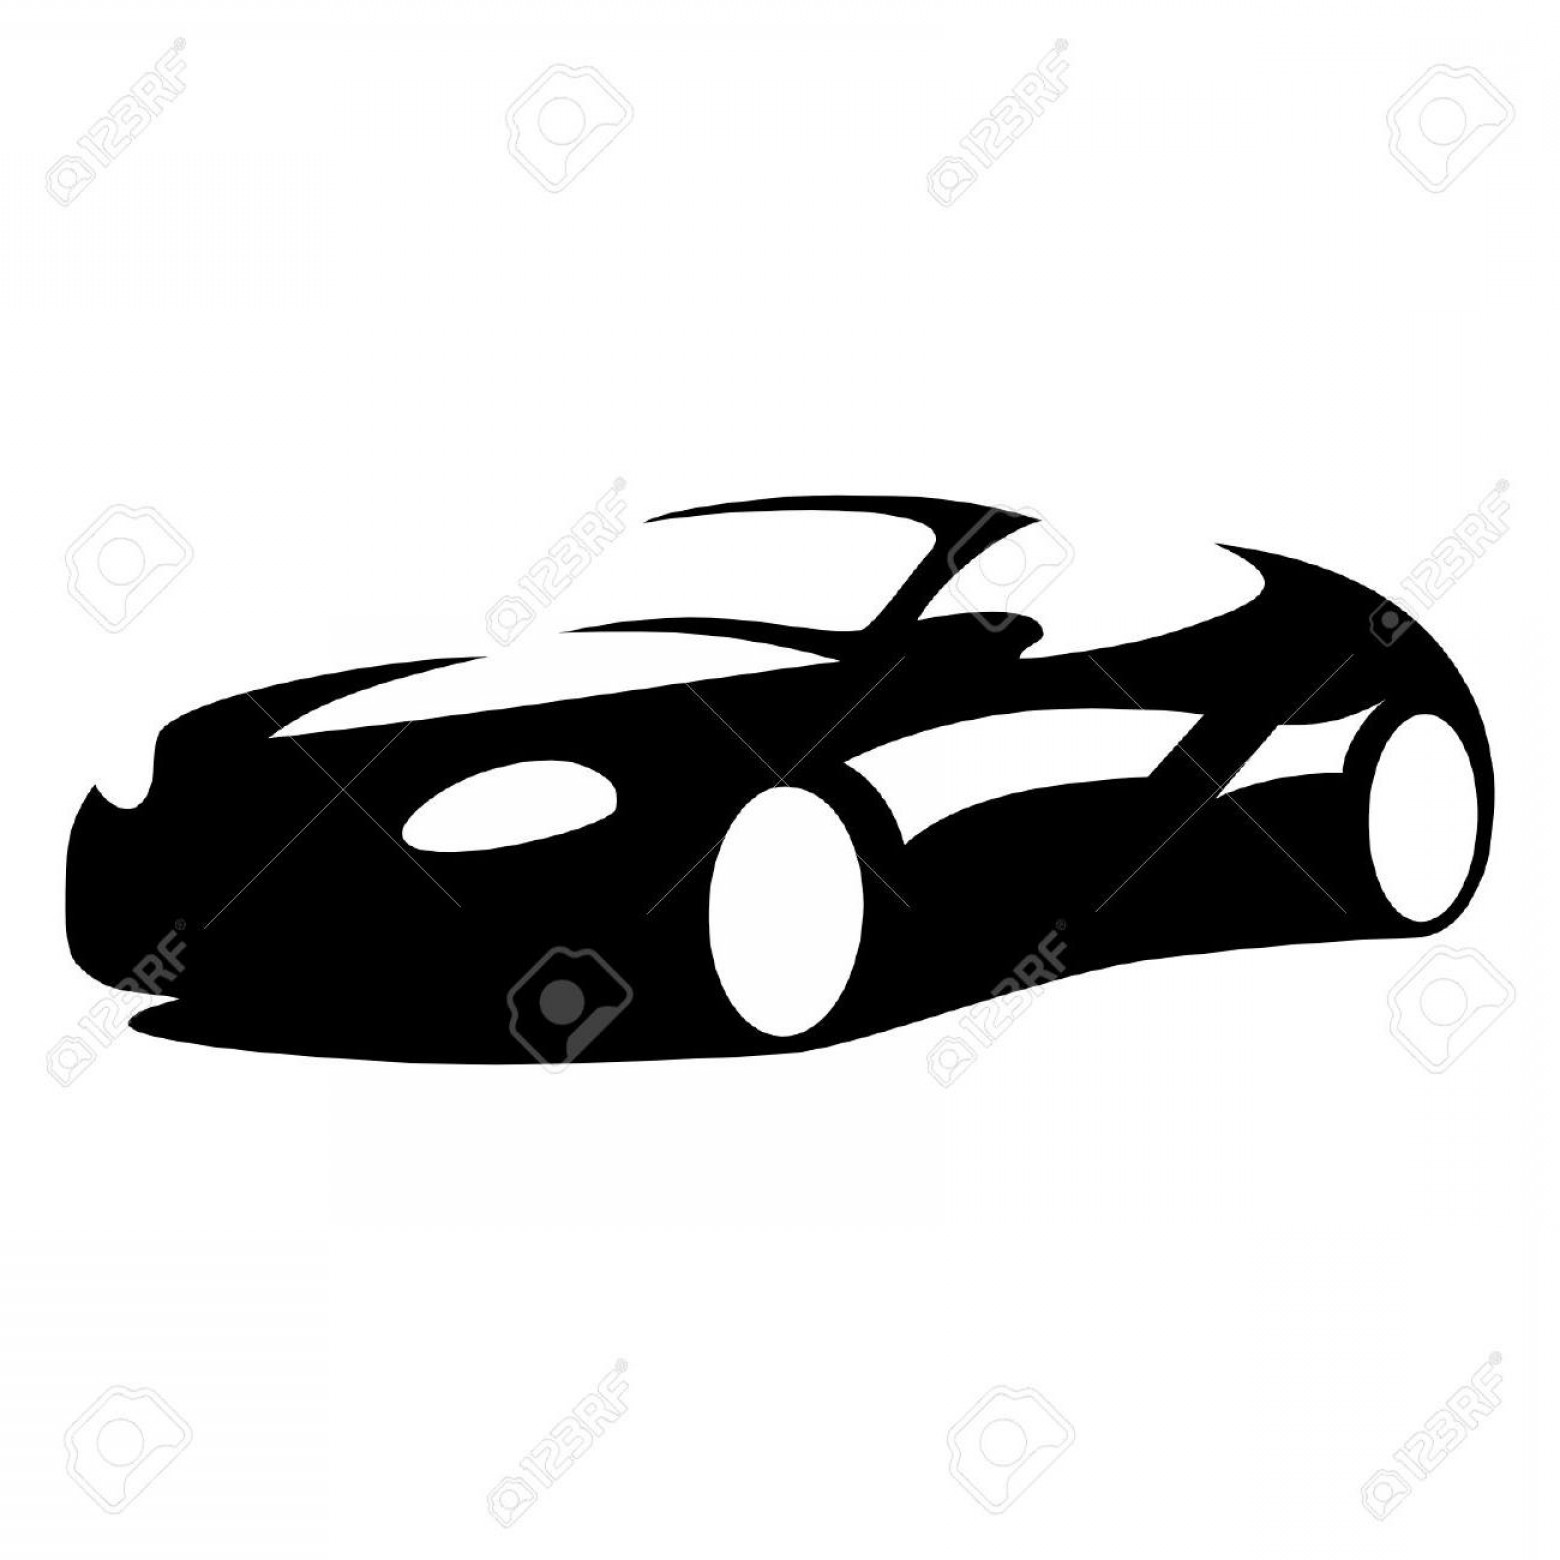 1560x1560 Car Silhouette Vector Art Lazttweet